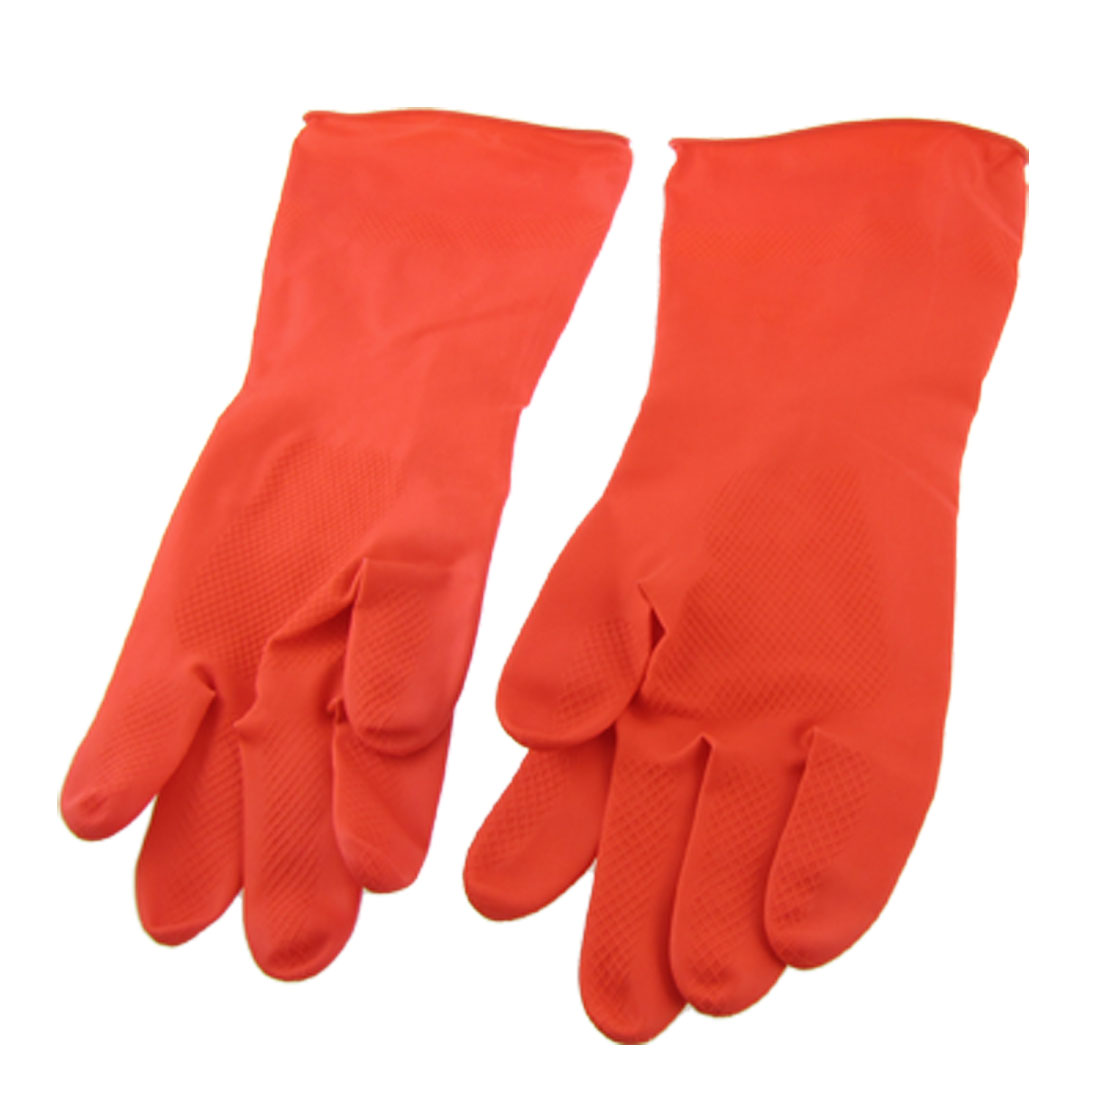 Home Kitchen Latex Water Resistant Dish Washing Cleaning Long Gloves Pair Red